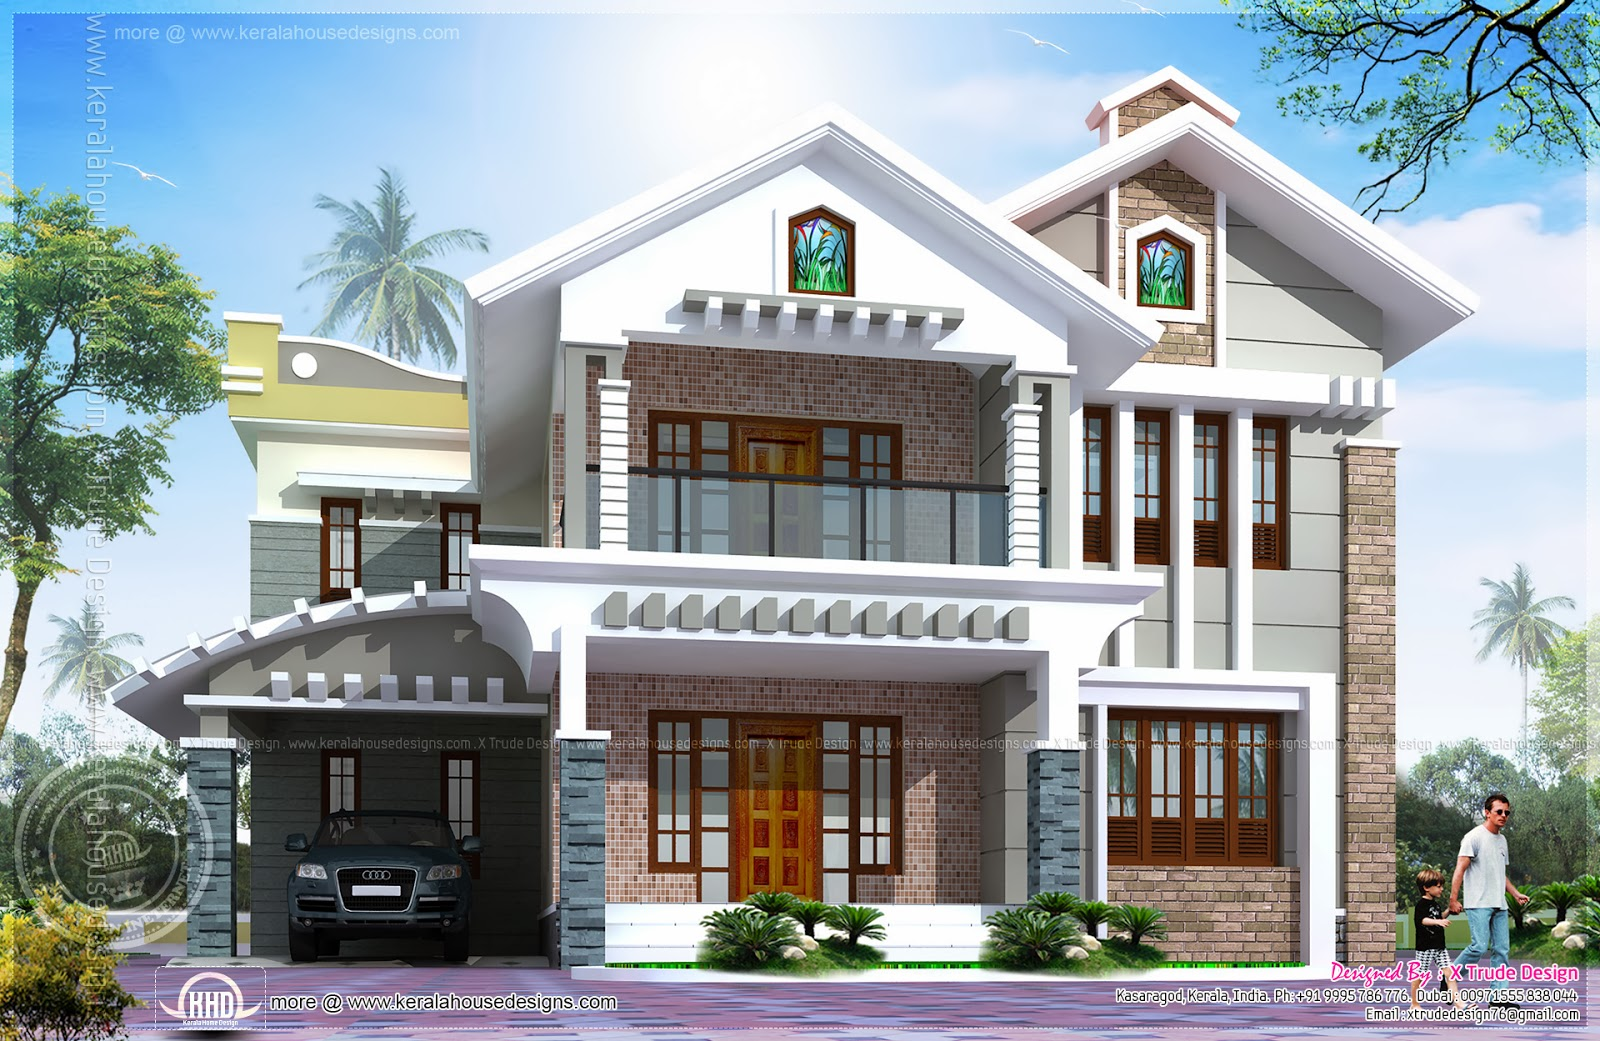 Luxury villa exterior designs the image for Luxury house exterior designs